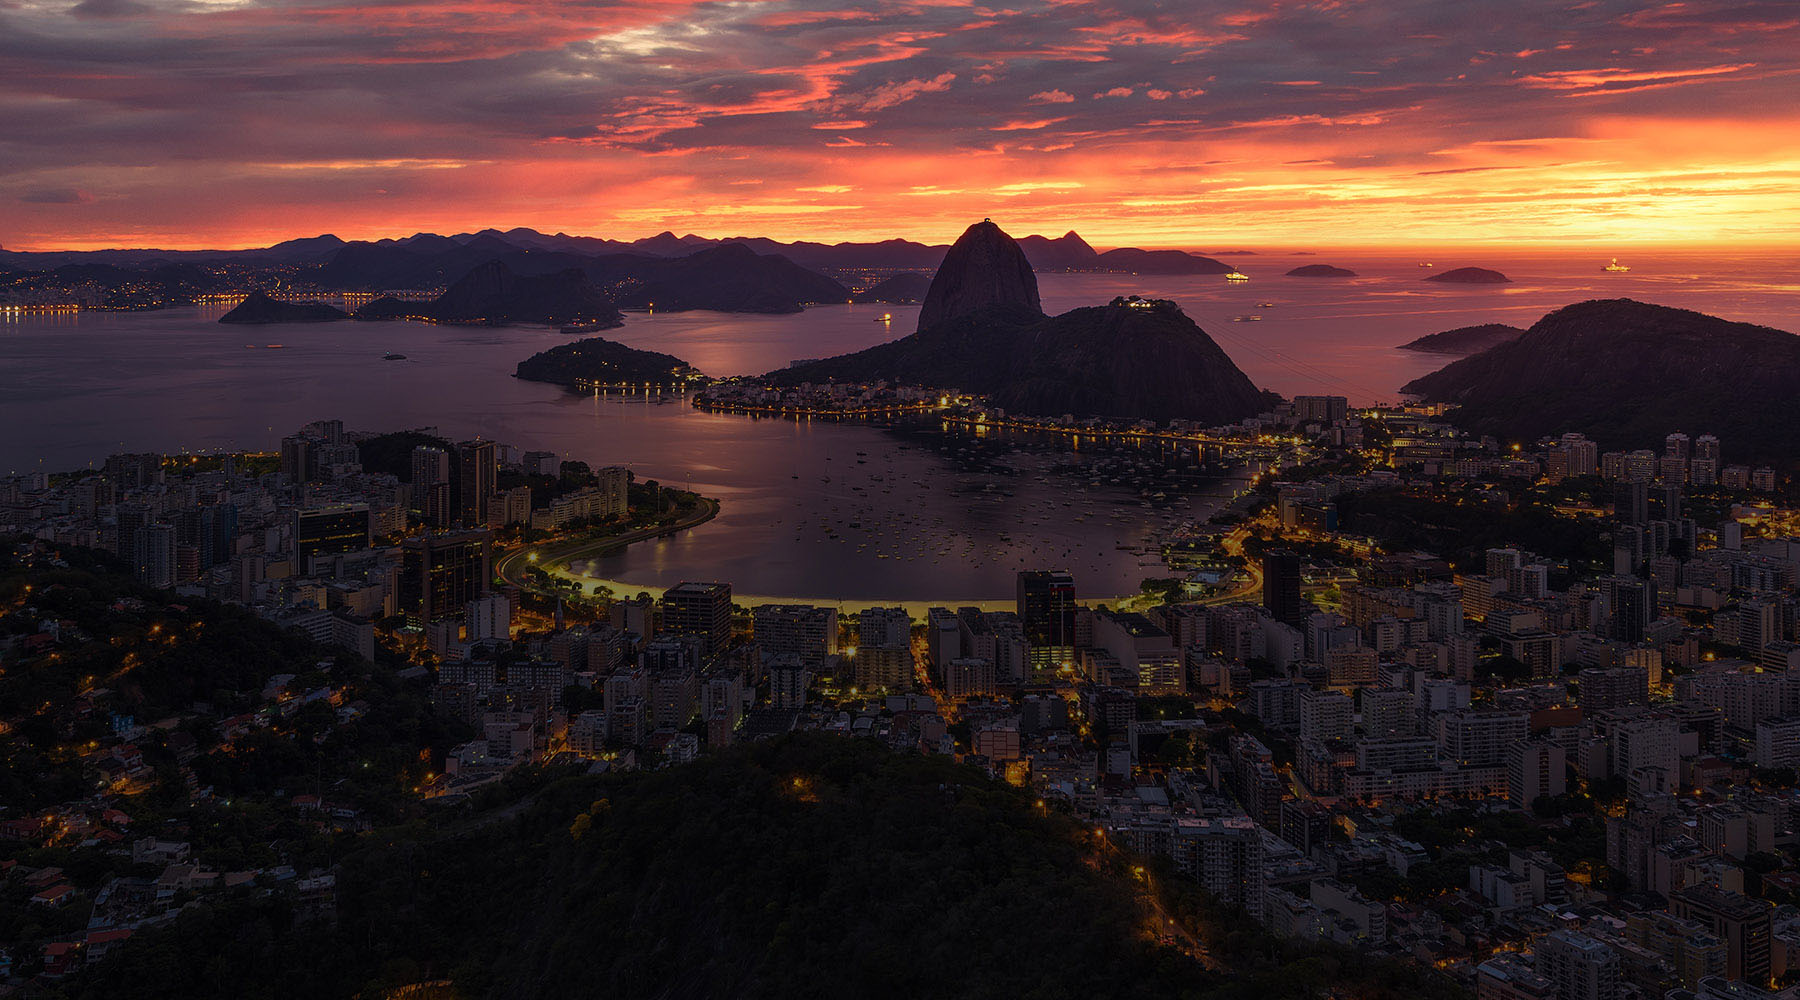 15-NIGHT NEW YEAR'S EVE IN RIO VOYAGE